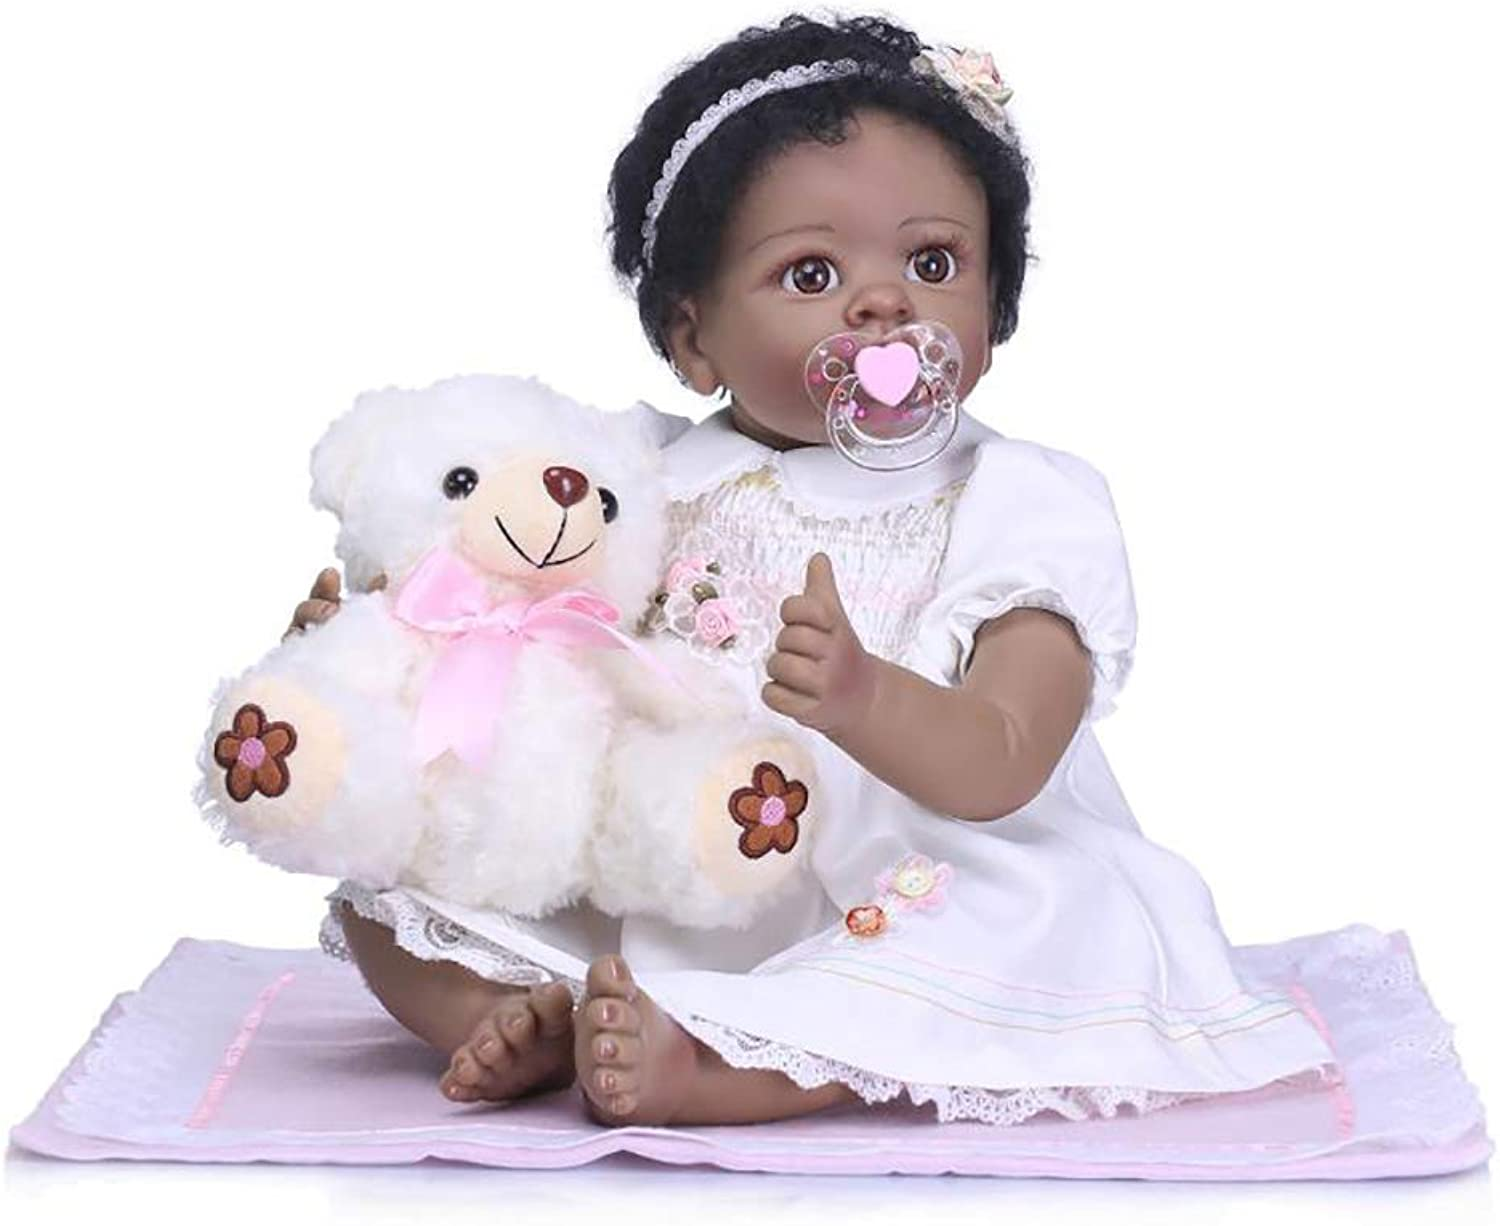 ZIYIUI 22Inch Reborn Baby Doll Indian Style Soft silicone Vinyl Handmade Newborn Baby Girl Kids Toy Birthday Gift Festvial Present Growth Partner